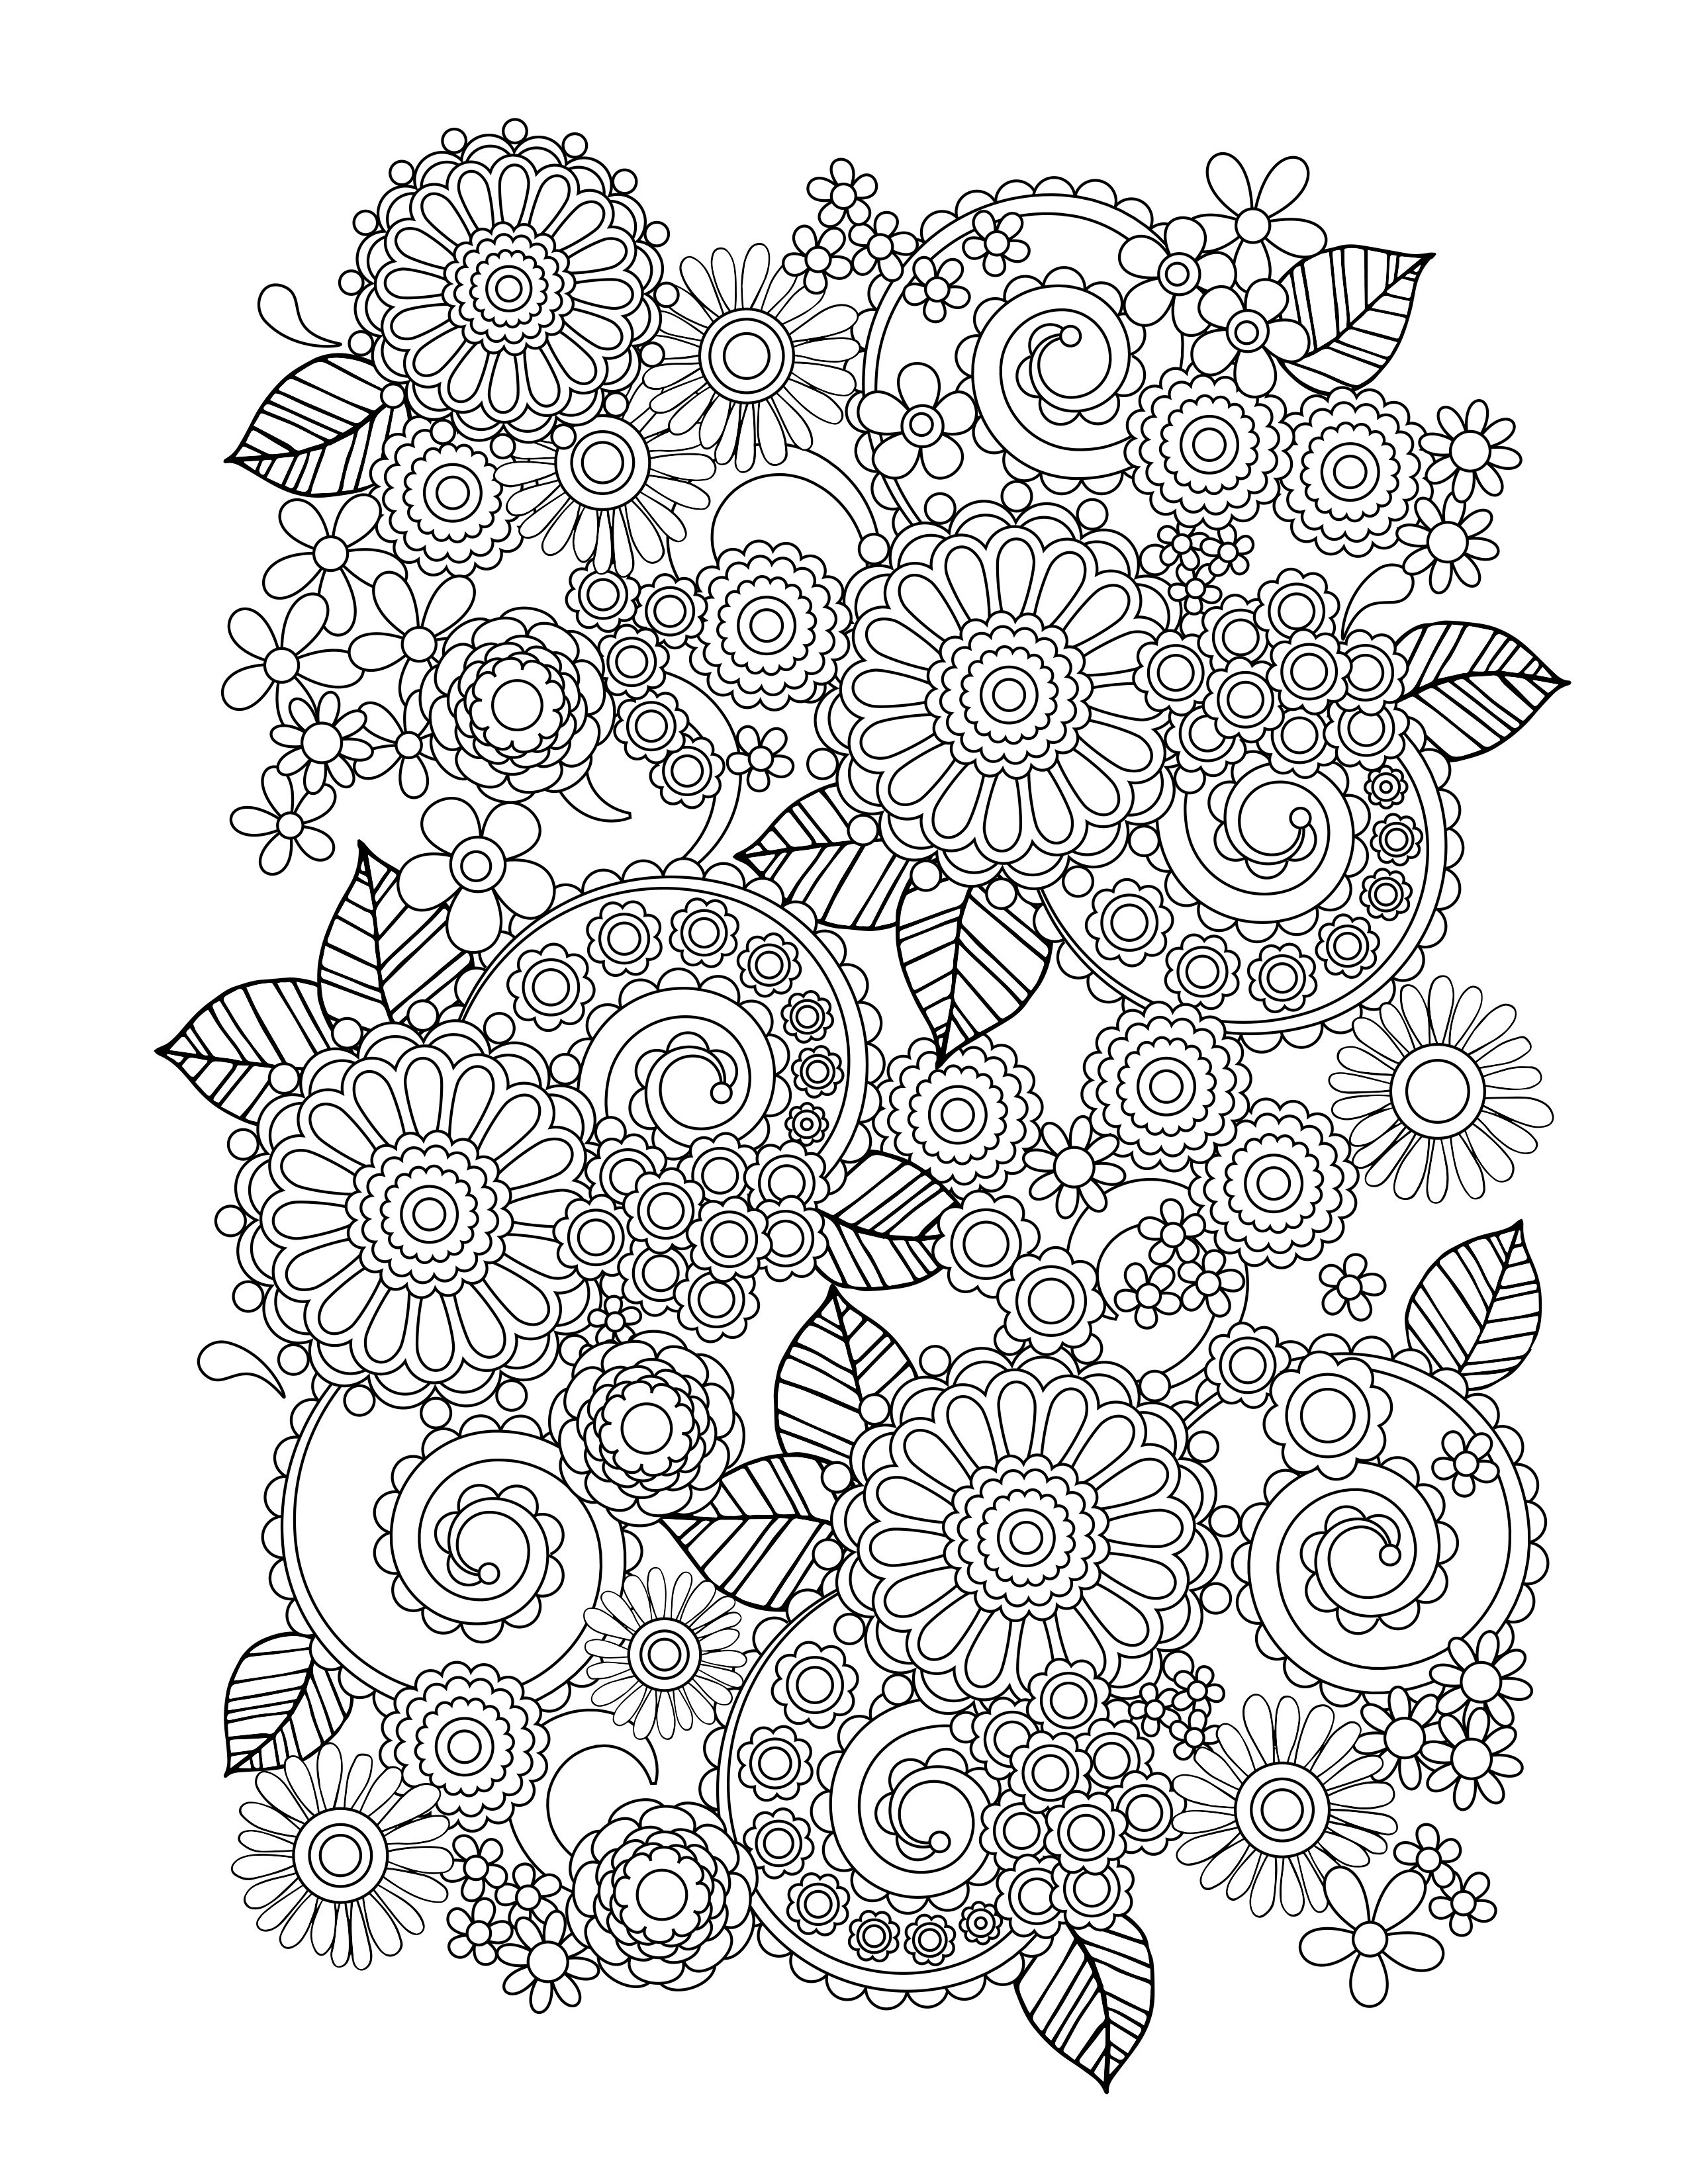 flower coloring pages adults flowers in two parts flowers adult coloring pages pages adults coloring flower